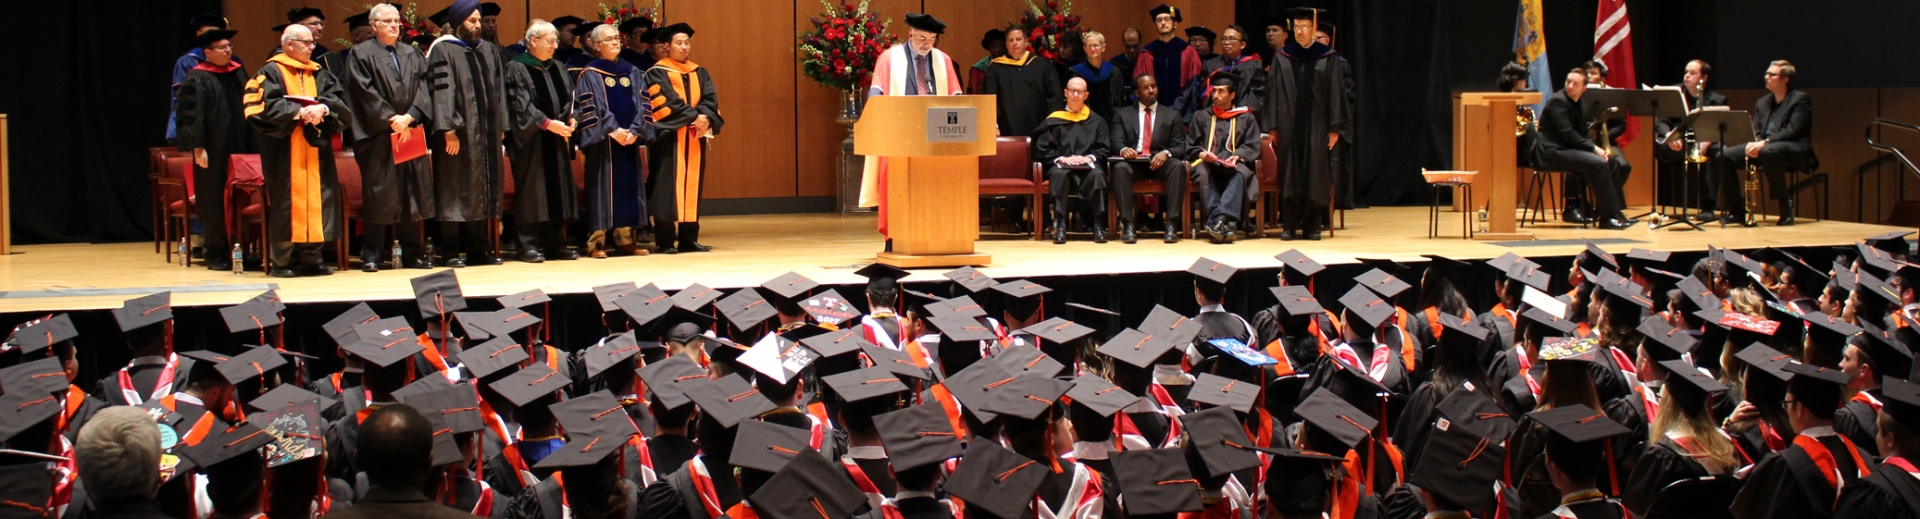 Keya Sadeghipour, dean of the college of engineering, speaking at graduation ceremony